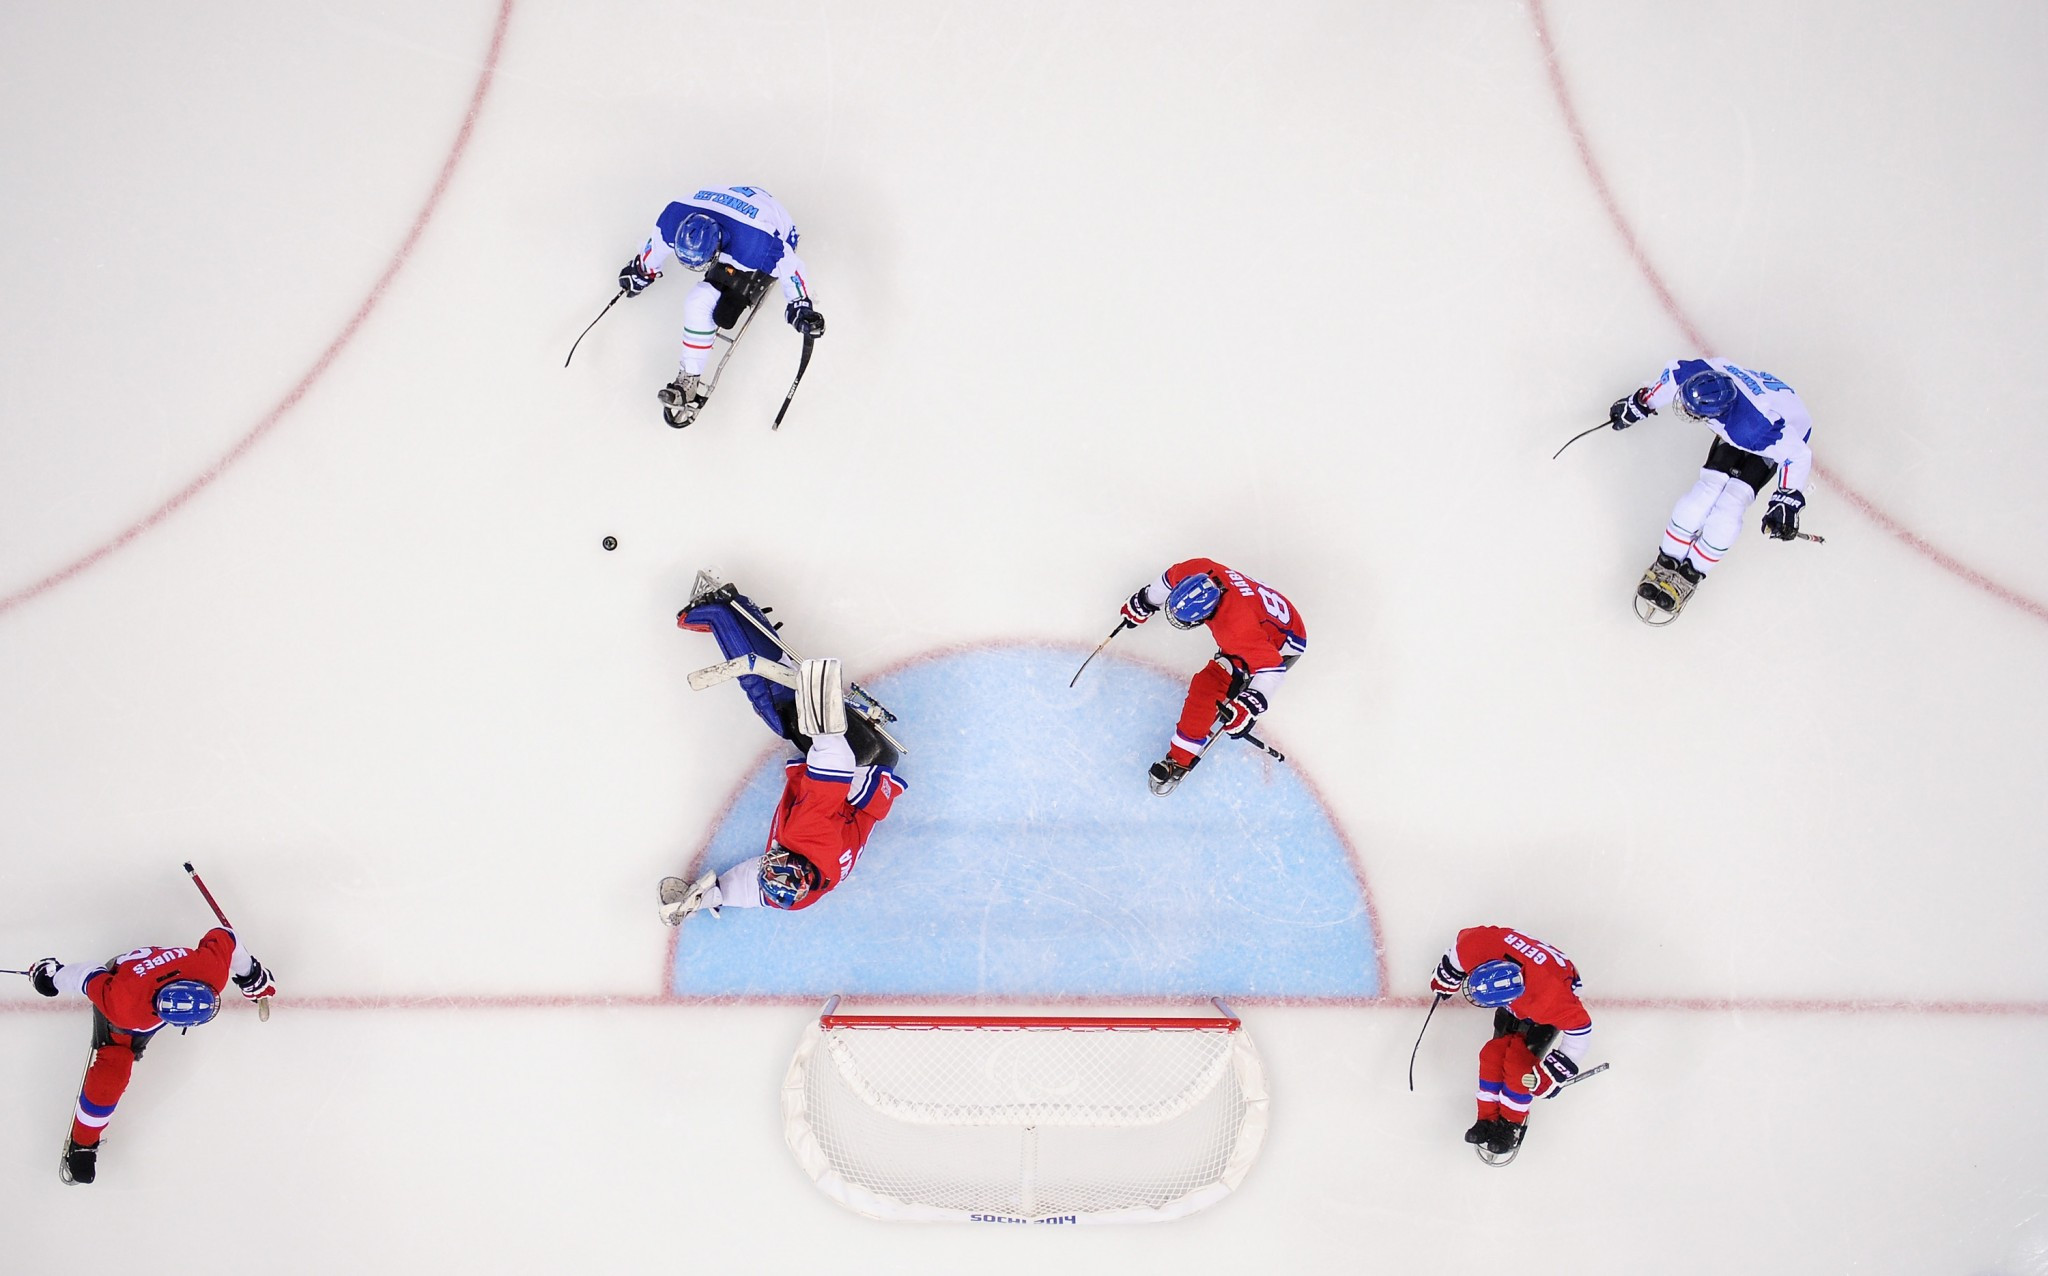 The APC hope the equipment will help Para ice hockey develop in a country not a traditional winter sport nation ©Getty Images